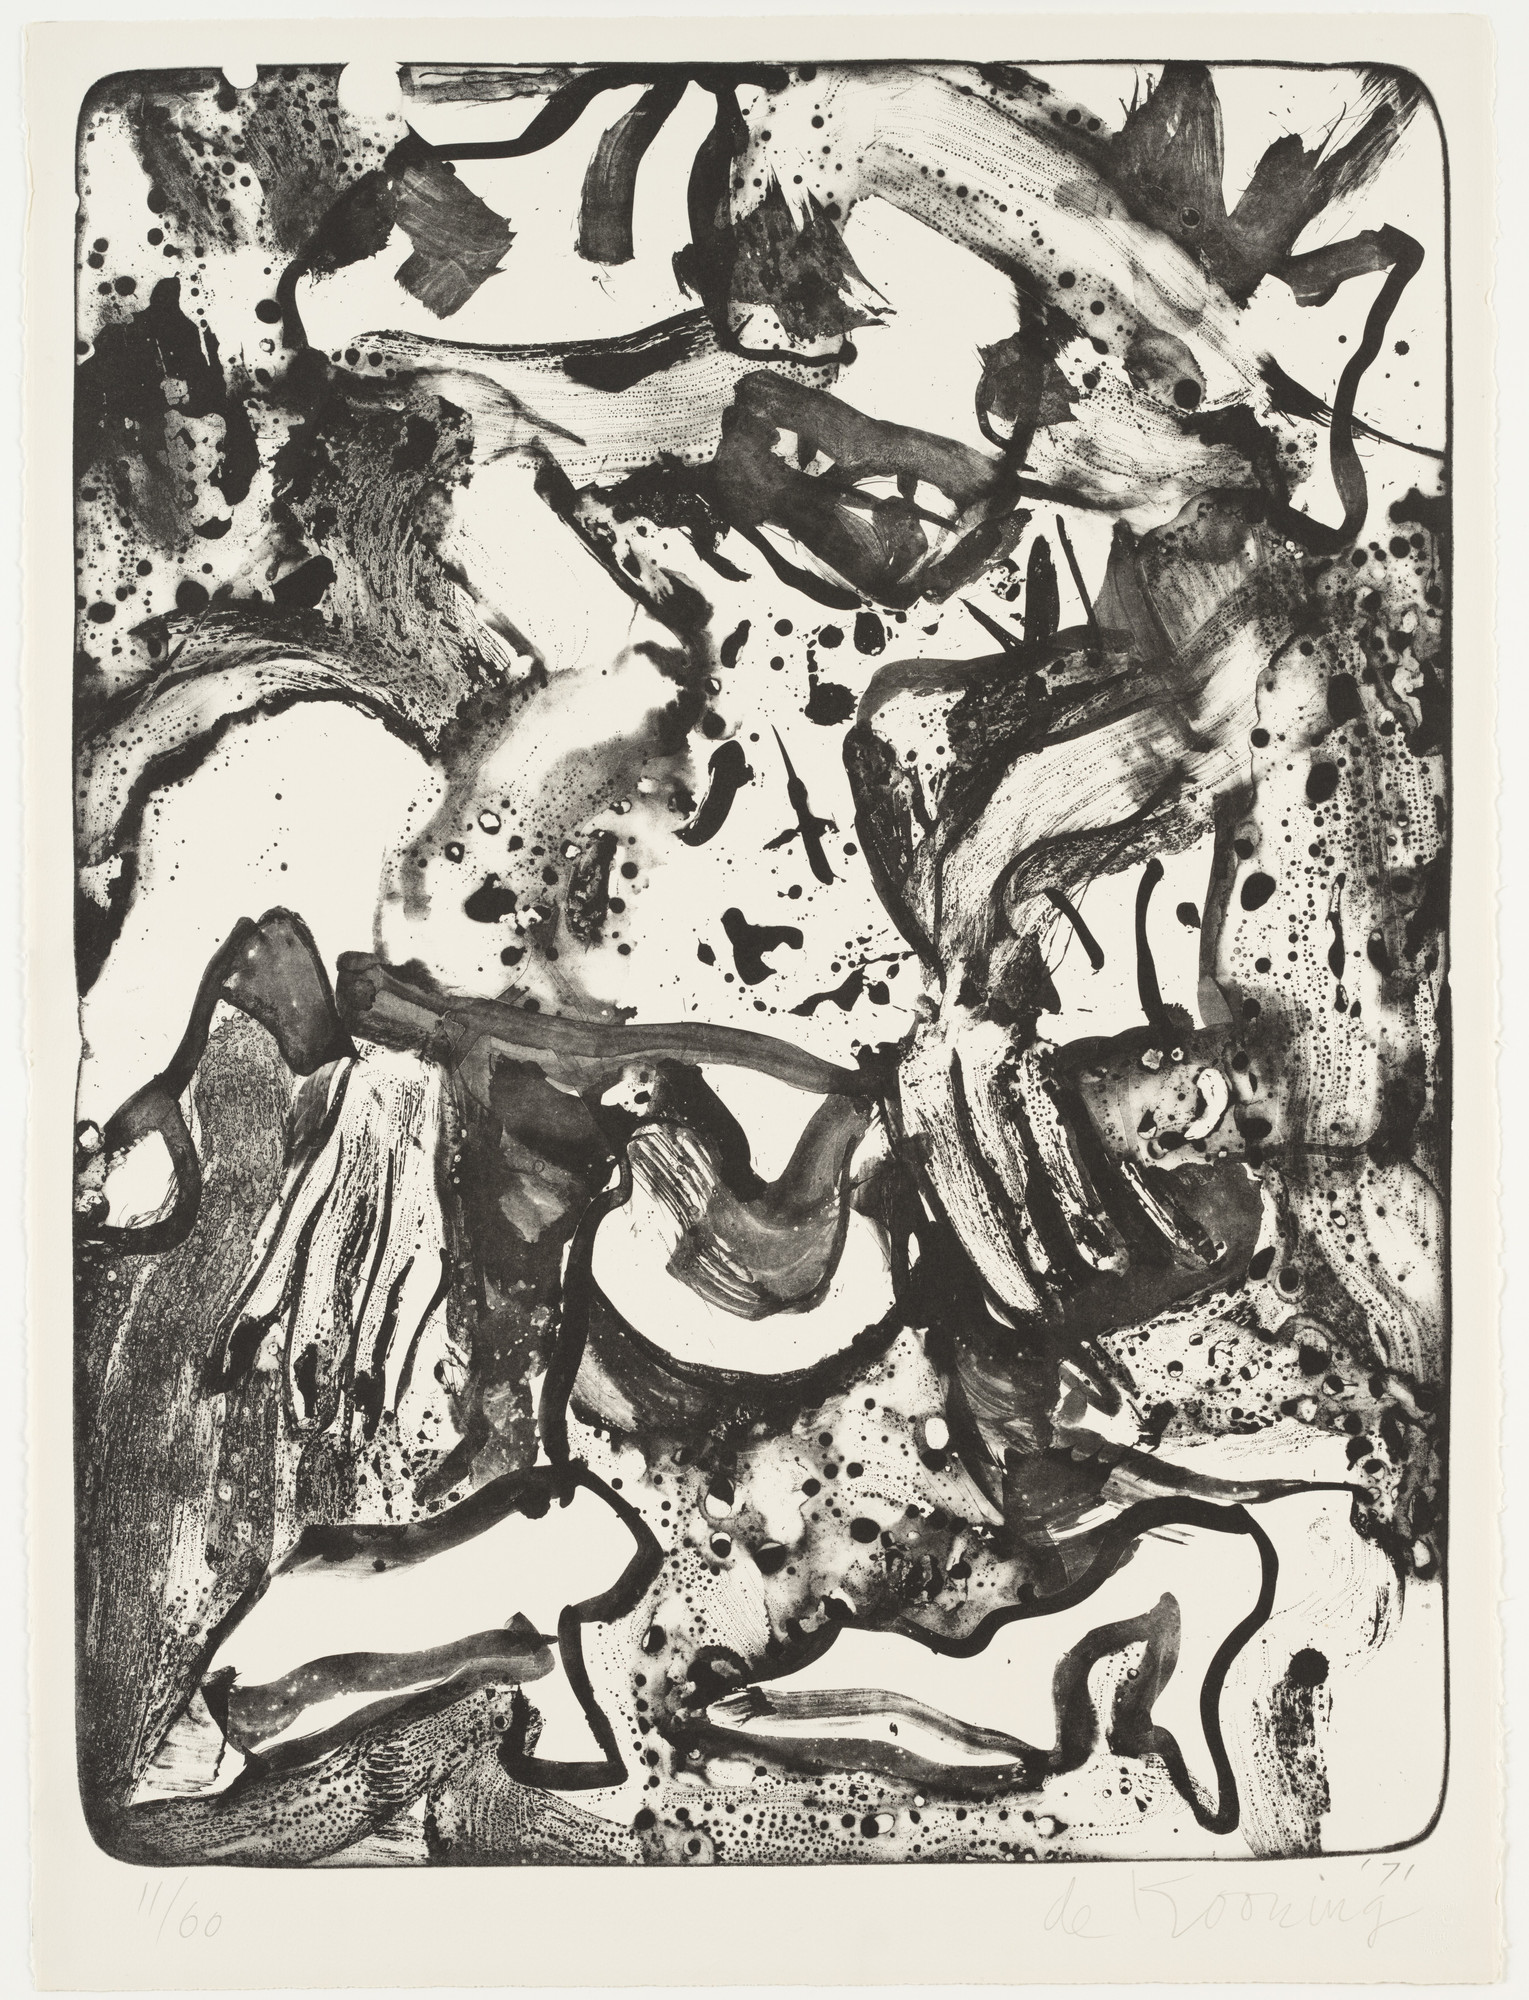 Willem de Kooning. Minnie Mouse. 1971